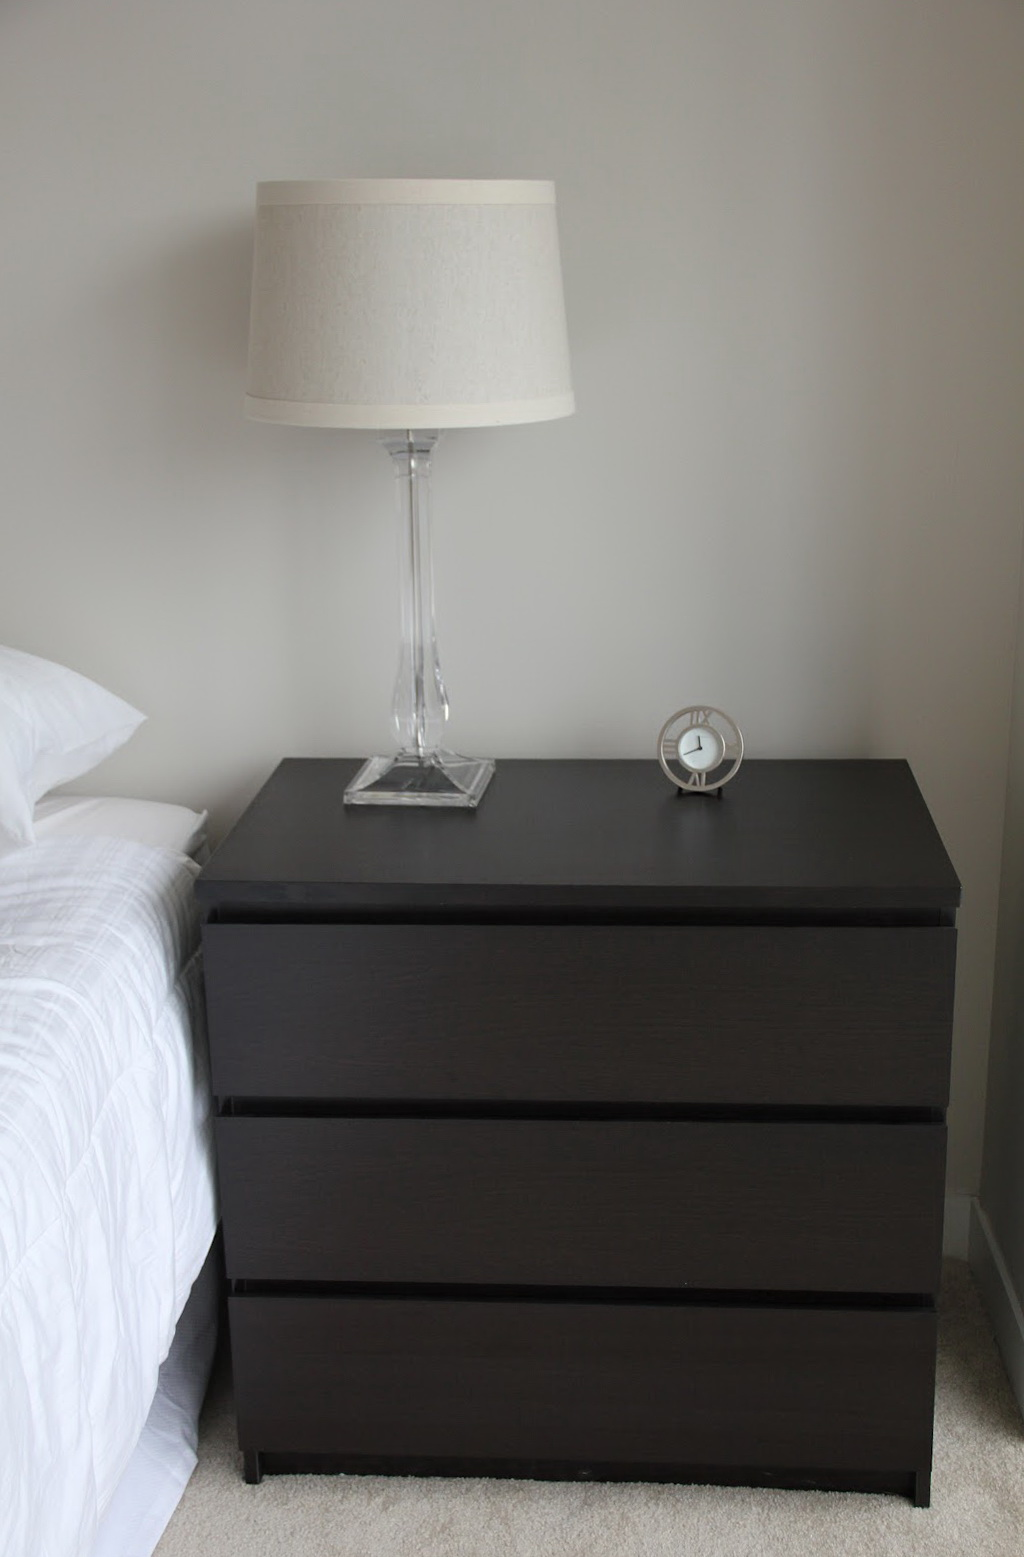 Ikea Malm Dresser Changing Table